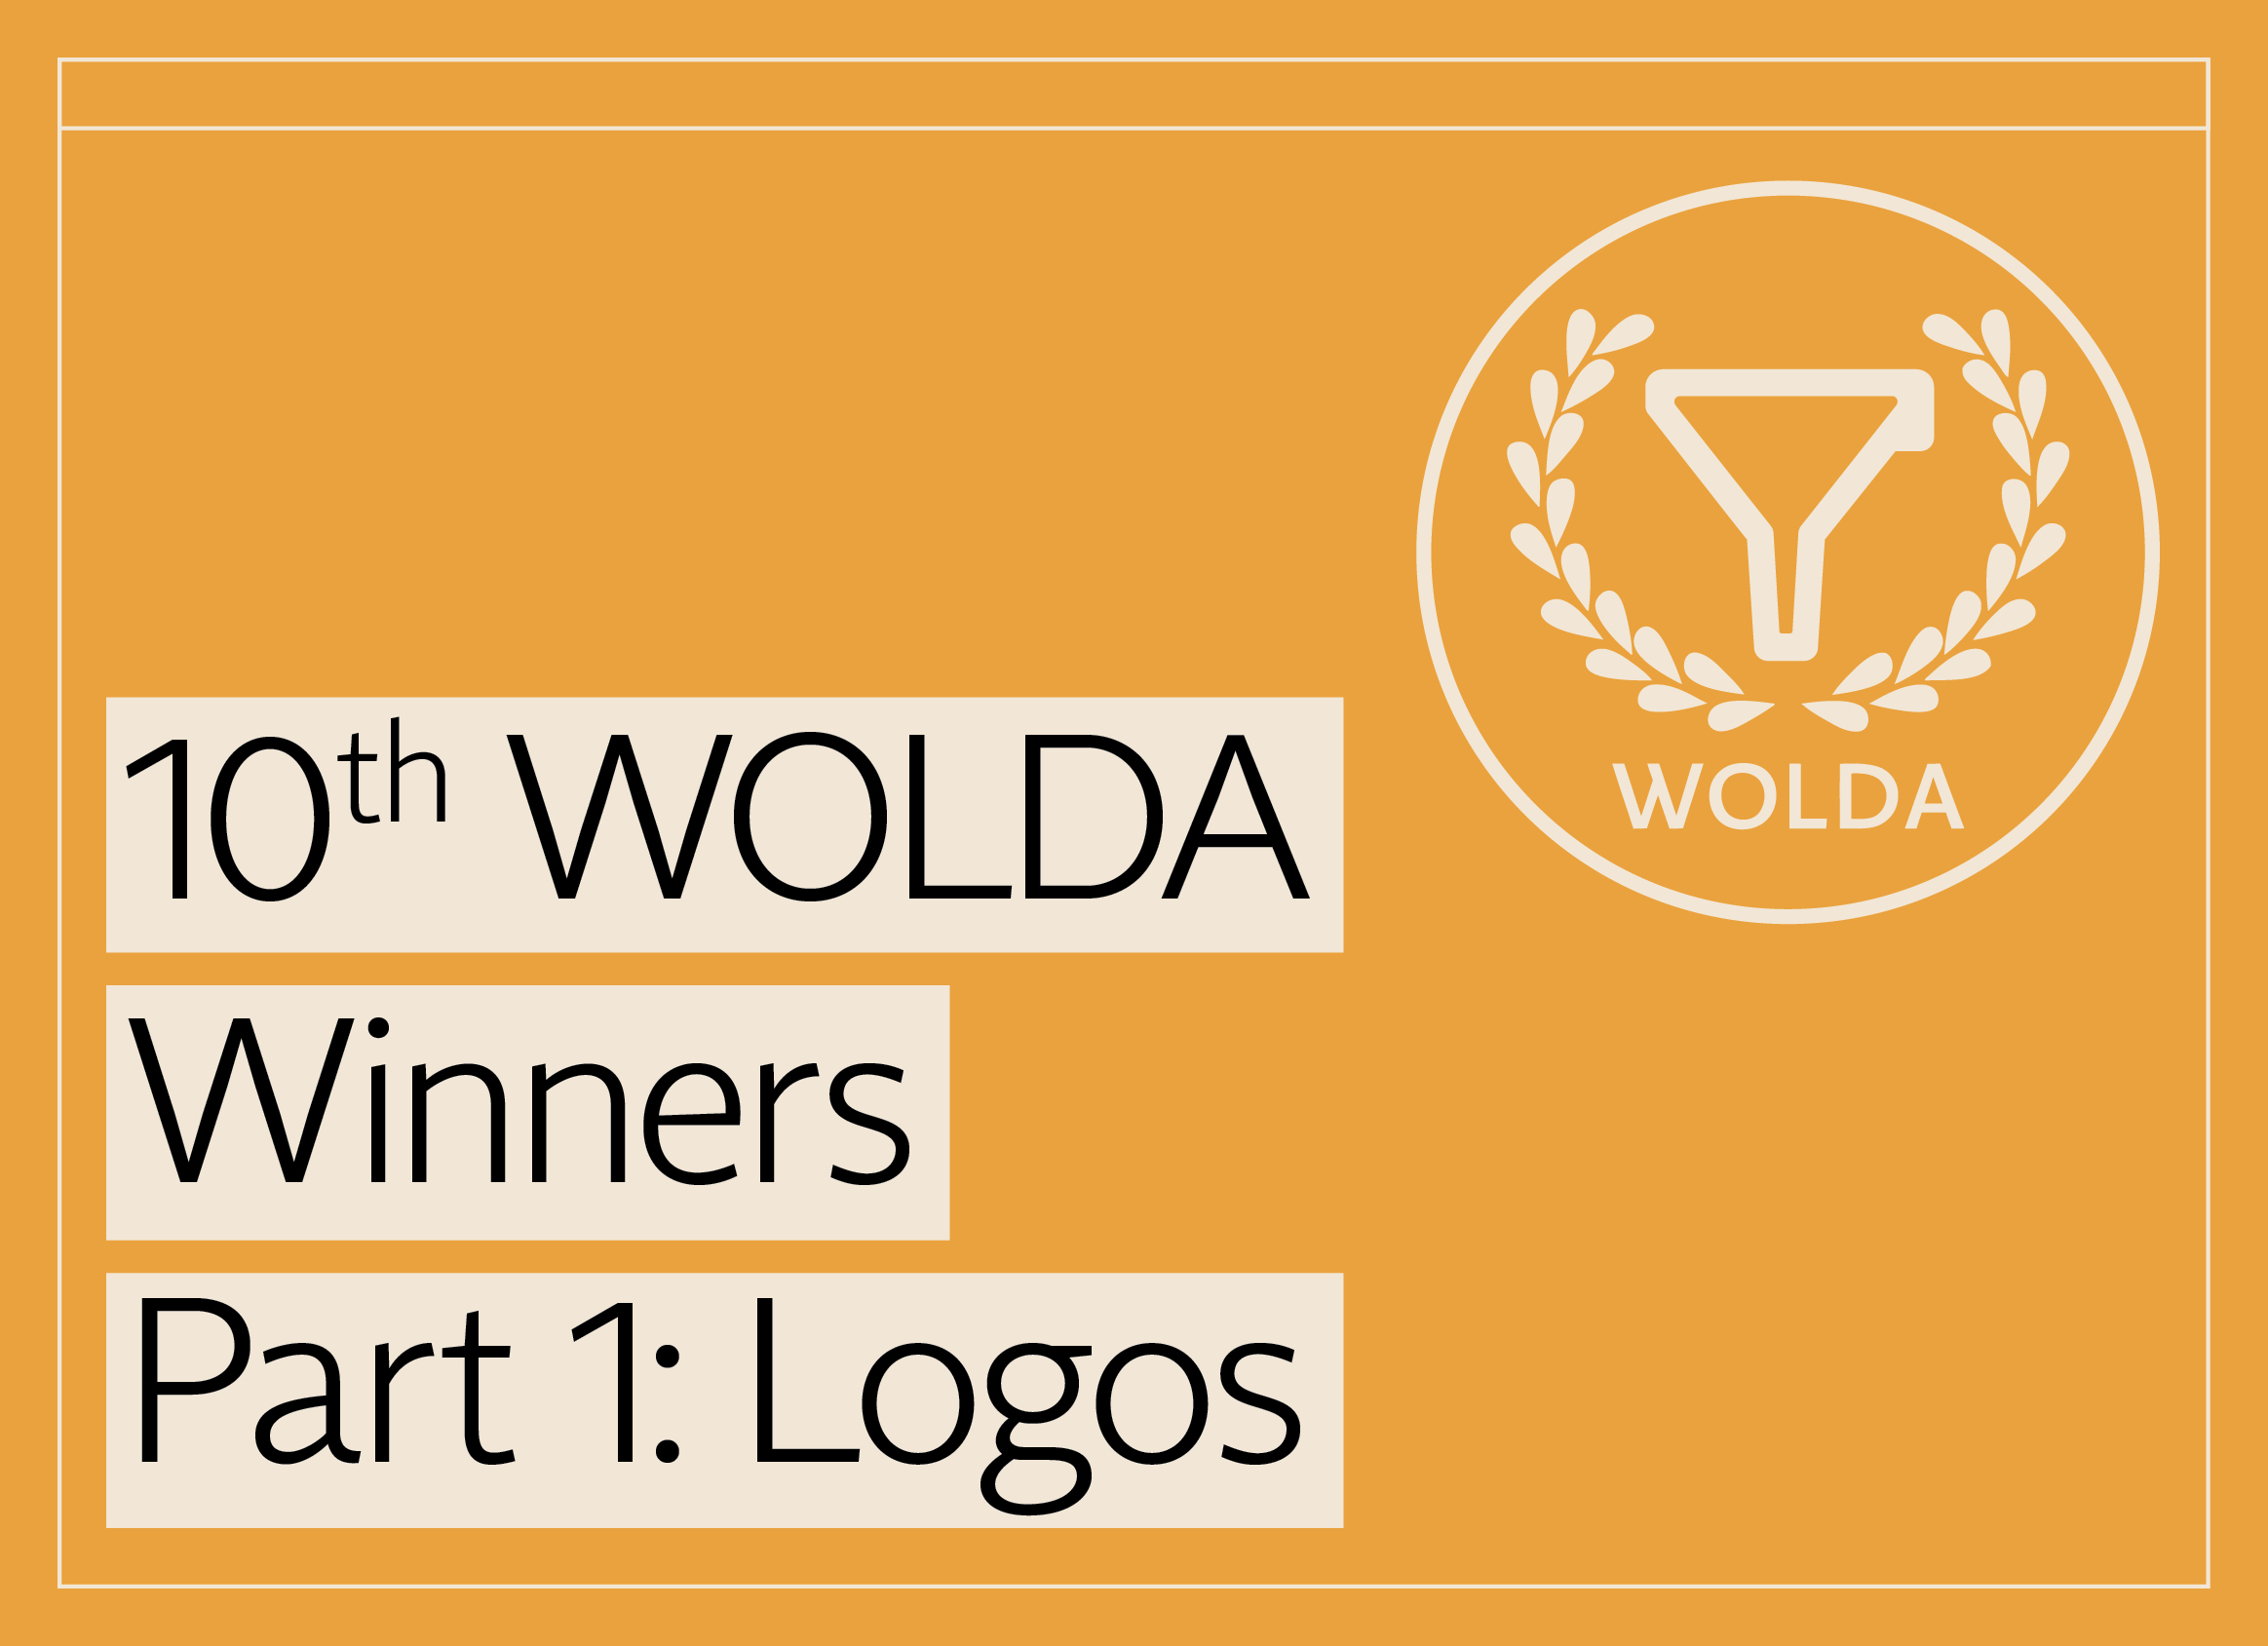 10th WOLDA WInners Part 1